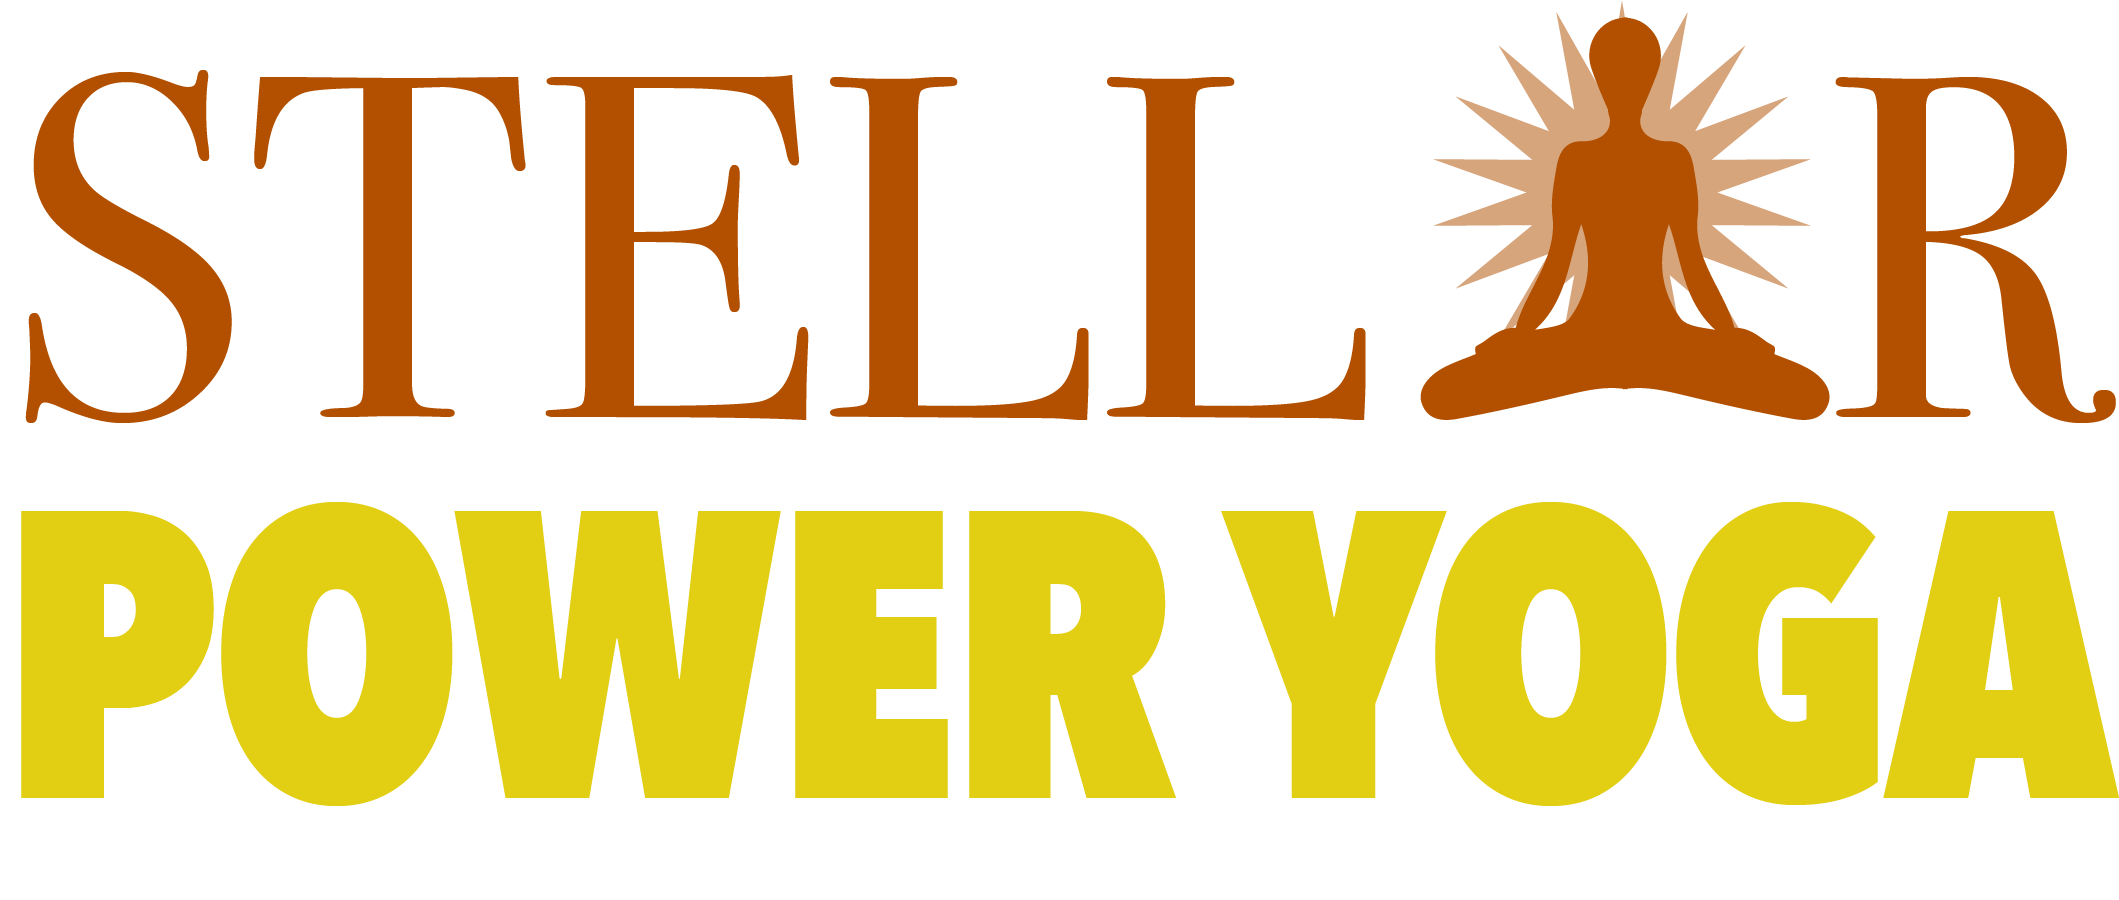 Stellar Power Yoga Logo